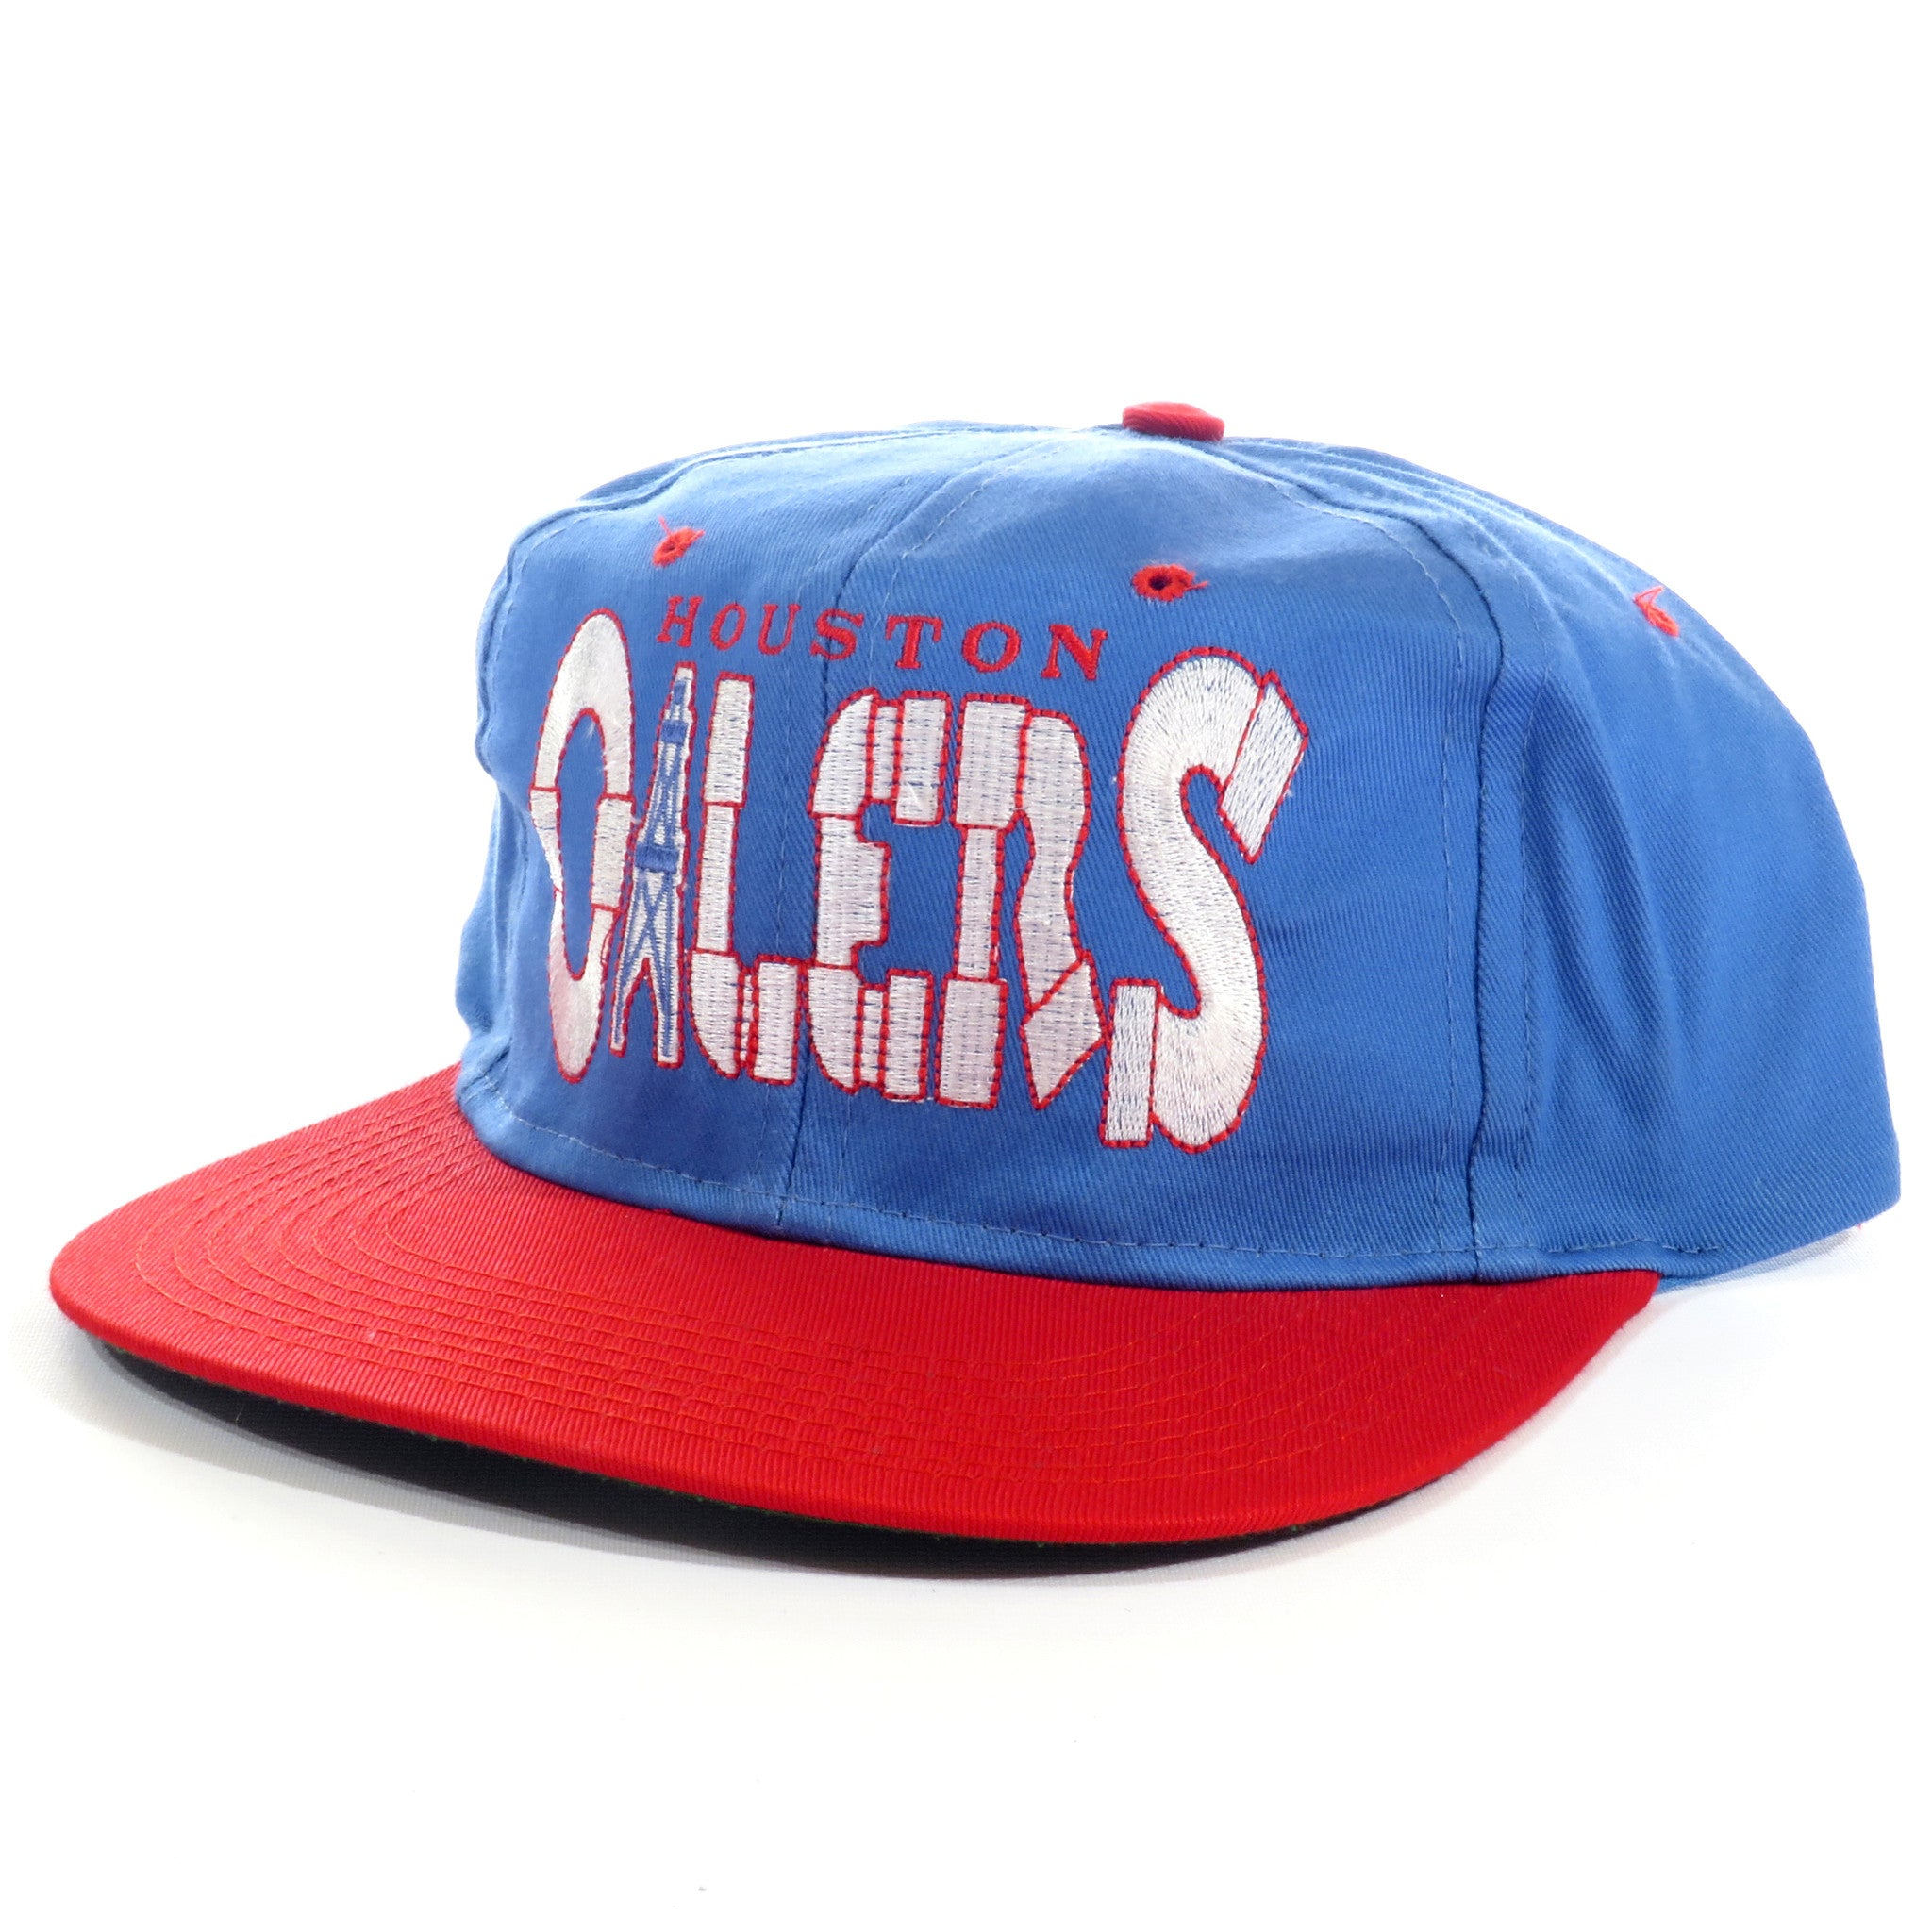 Houston Oilers Snapback Hat